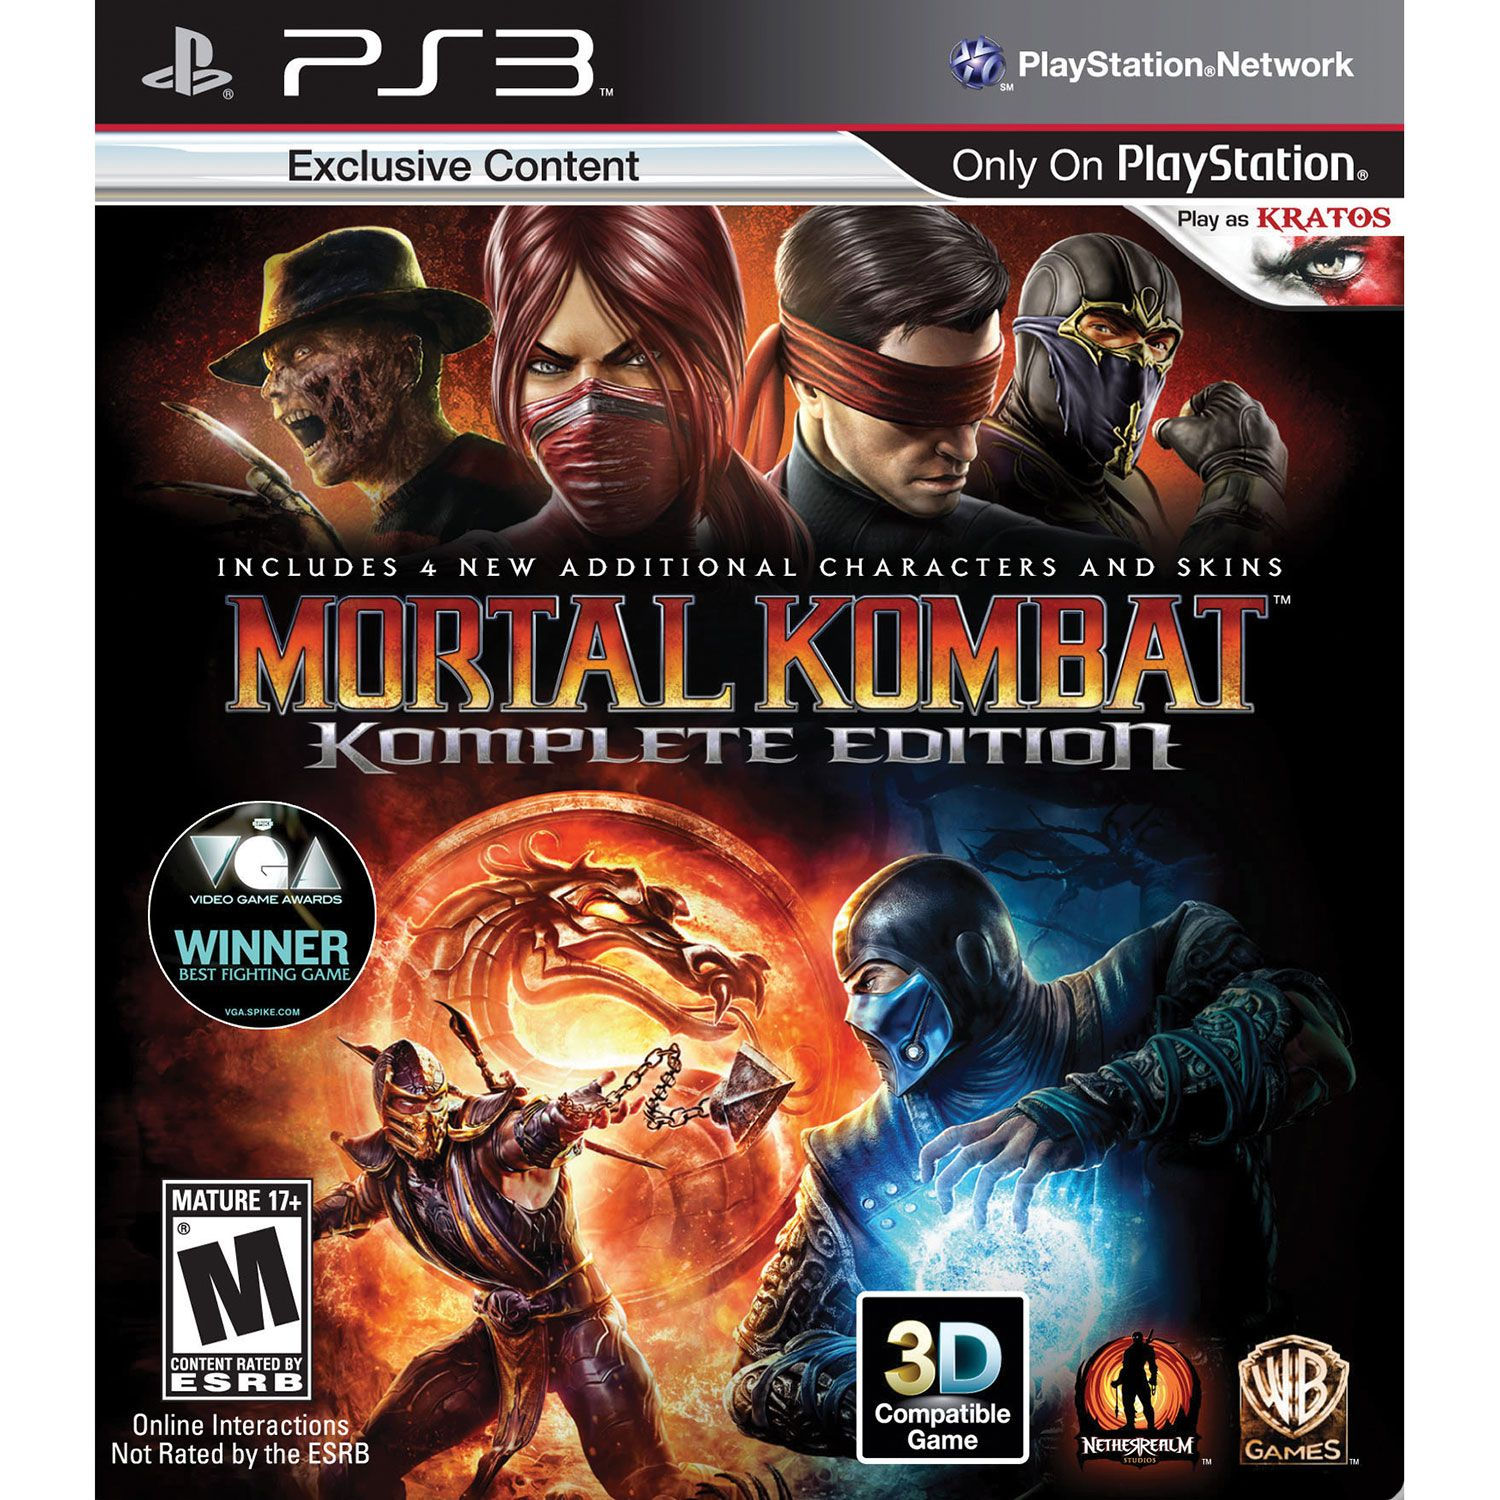 Mortal Kombat Komplete Edition (ps3) Playstation